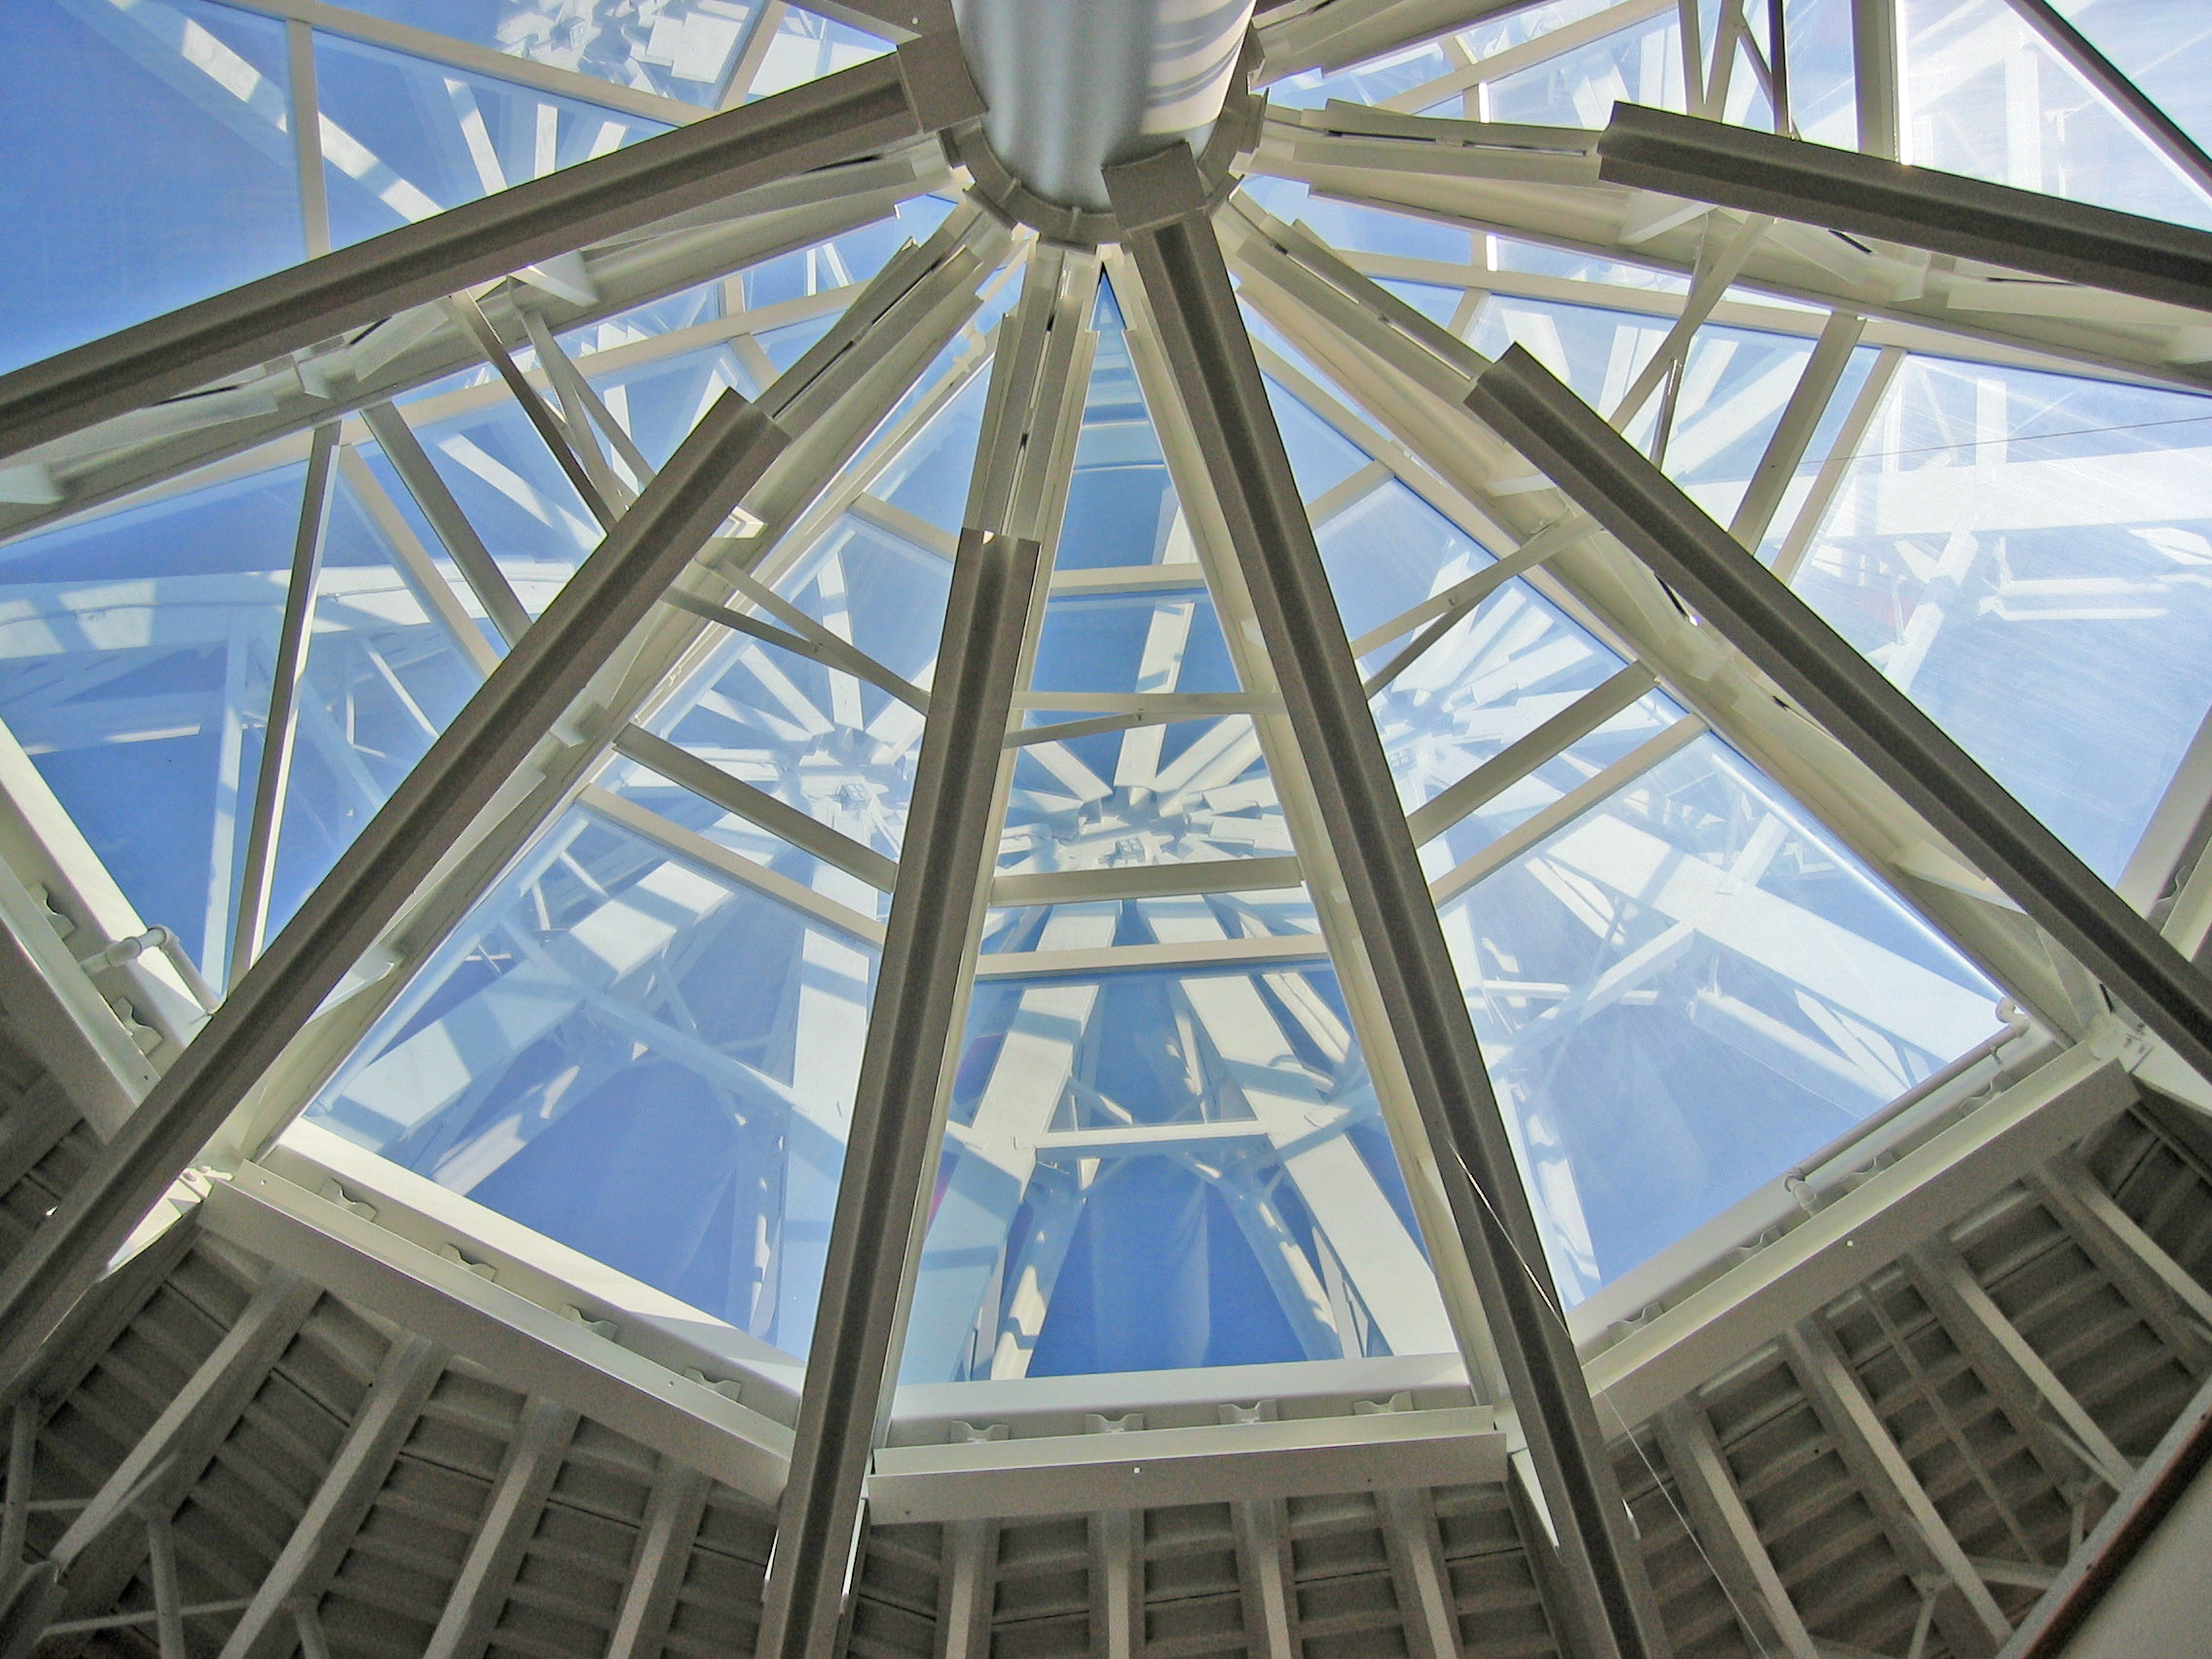 """Go Green! - Take the LEED onEnergy - """"Energy Saver WindowFilms""""Huper Optik's Select ProductTechnology was chosen as oneof the Top 10 Green Innovationsin 2007 by GreenSpec® andEnvironmental Building News."""